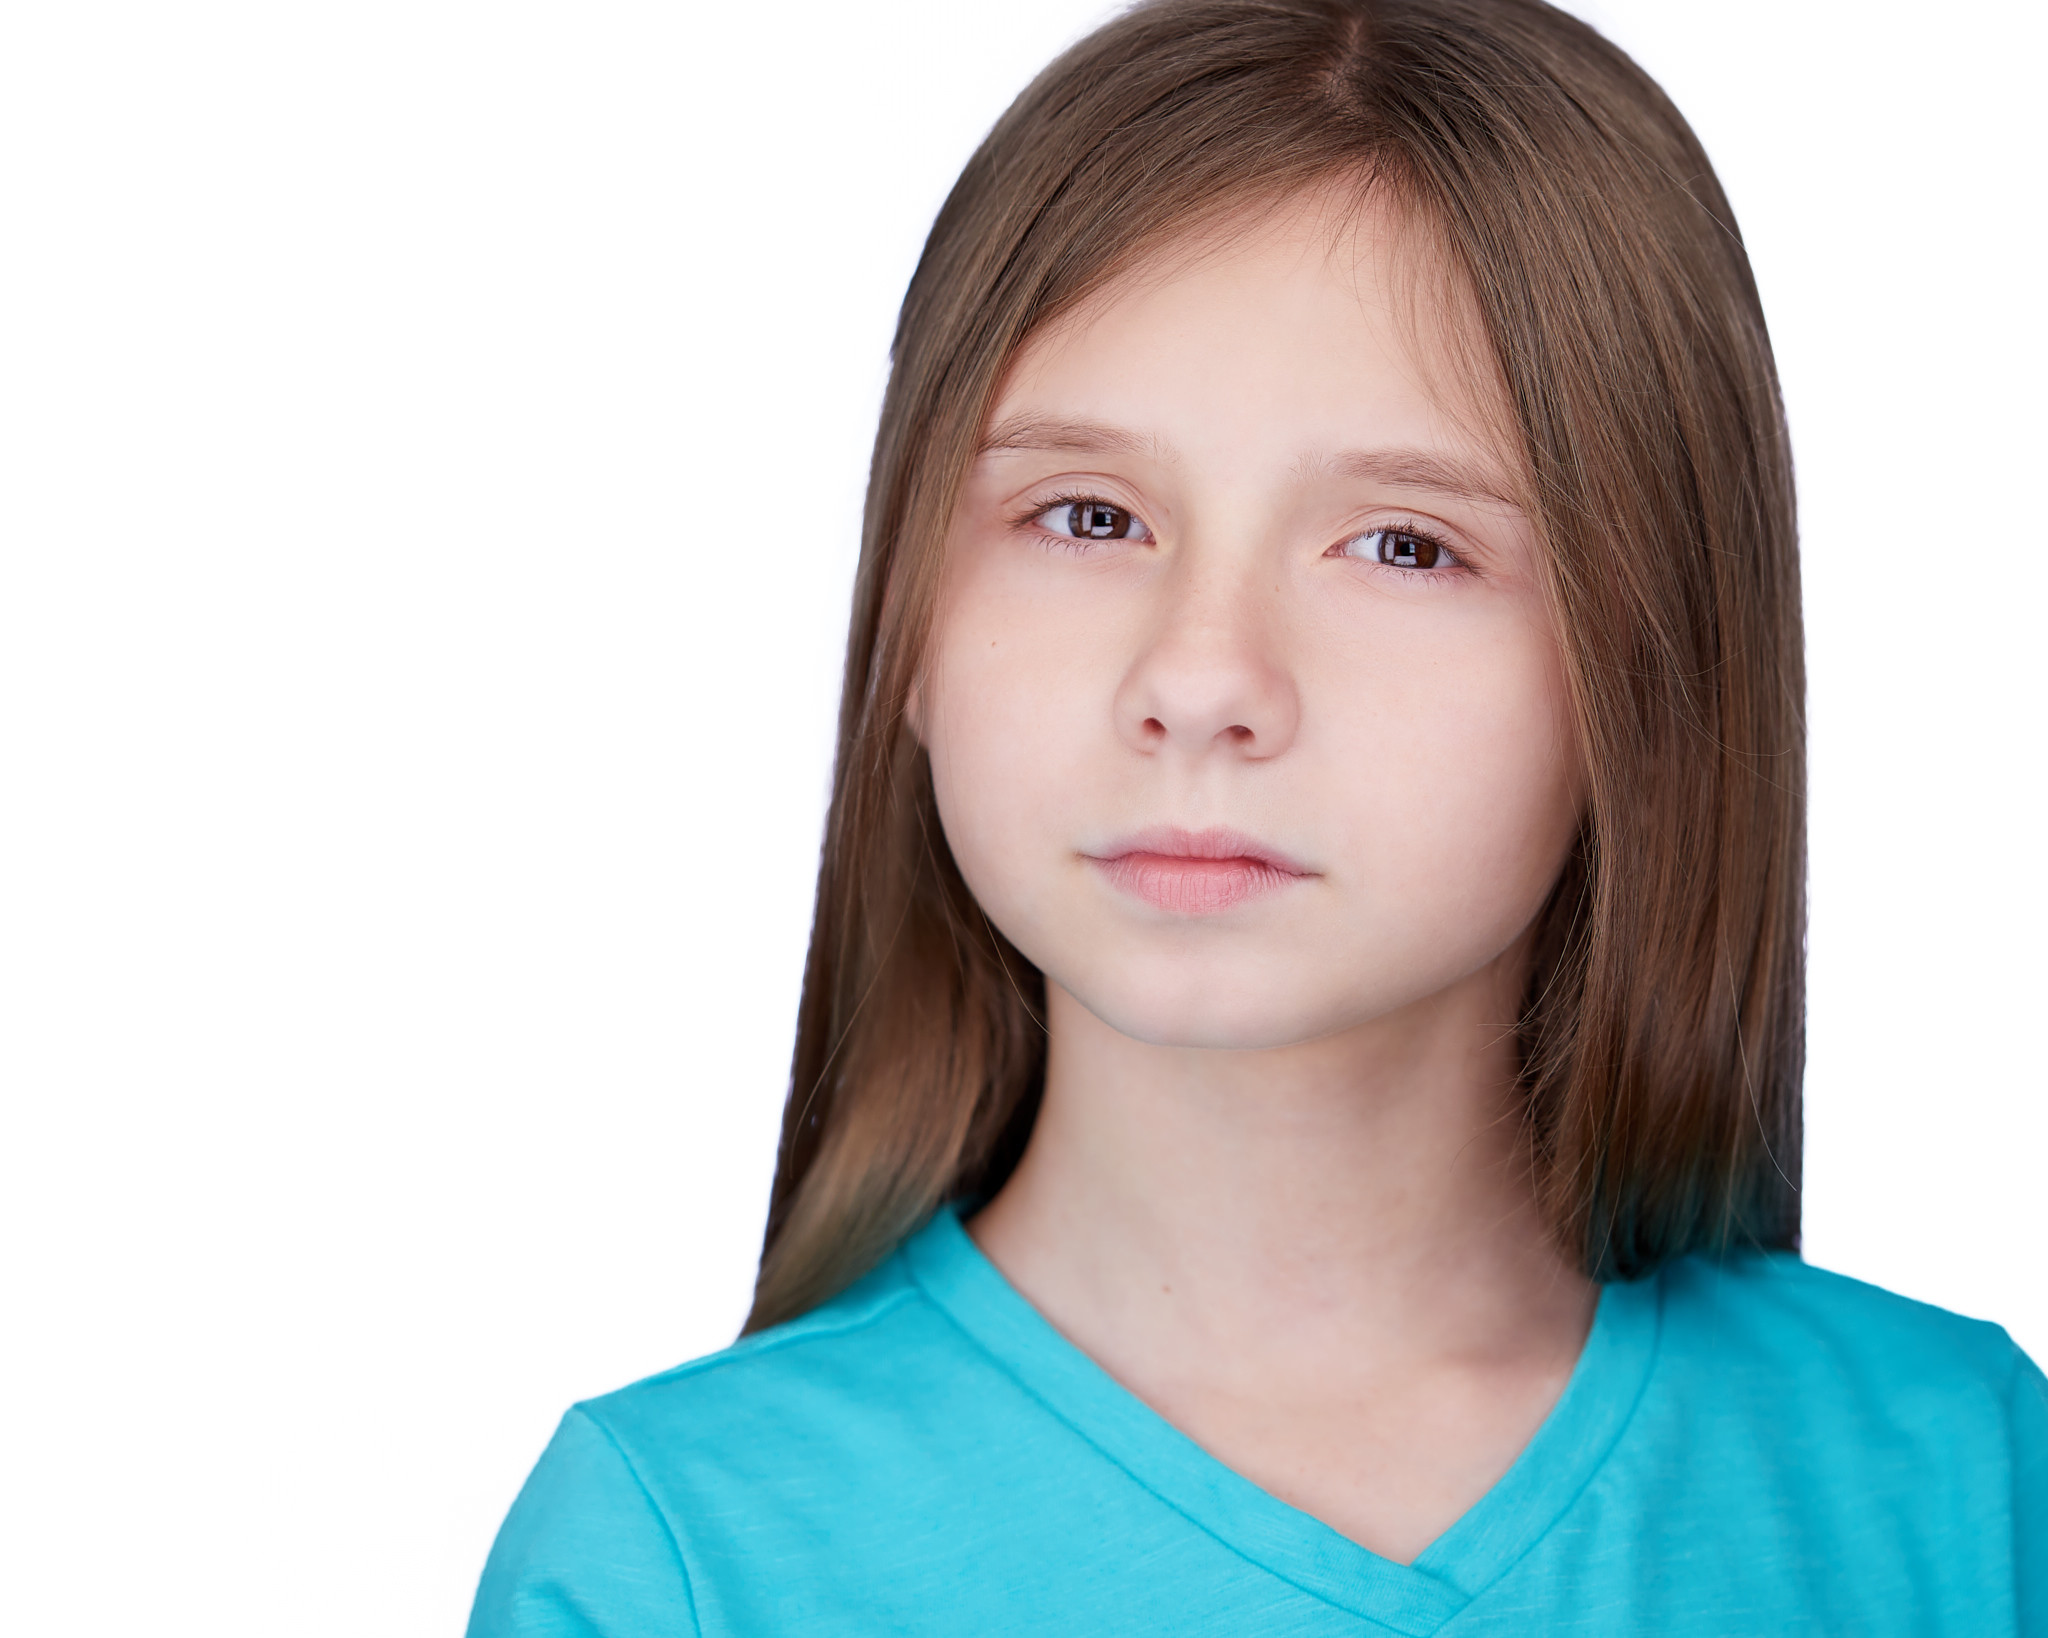 Child Headshots White Background Peter Hurley Style